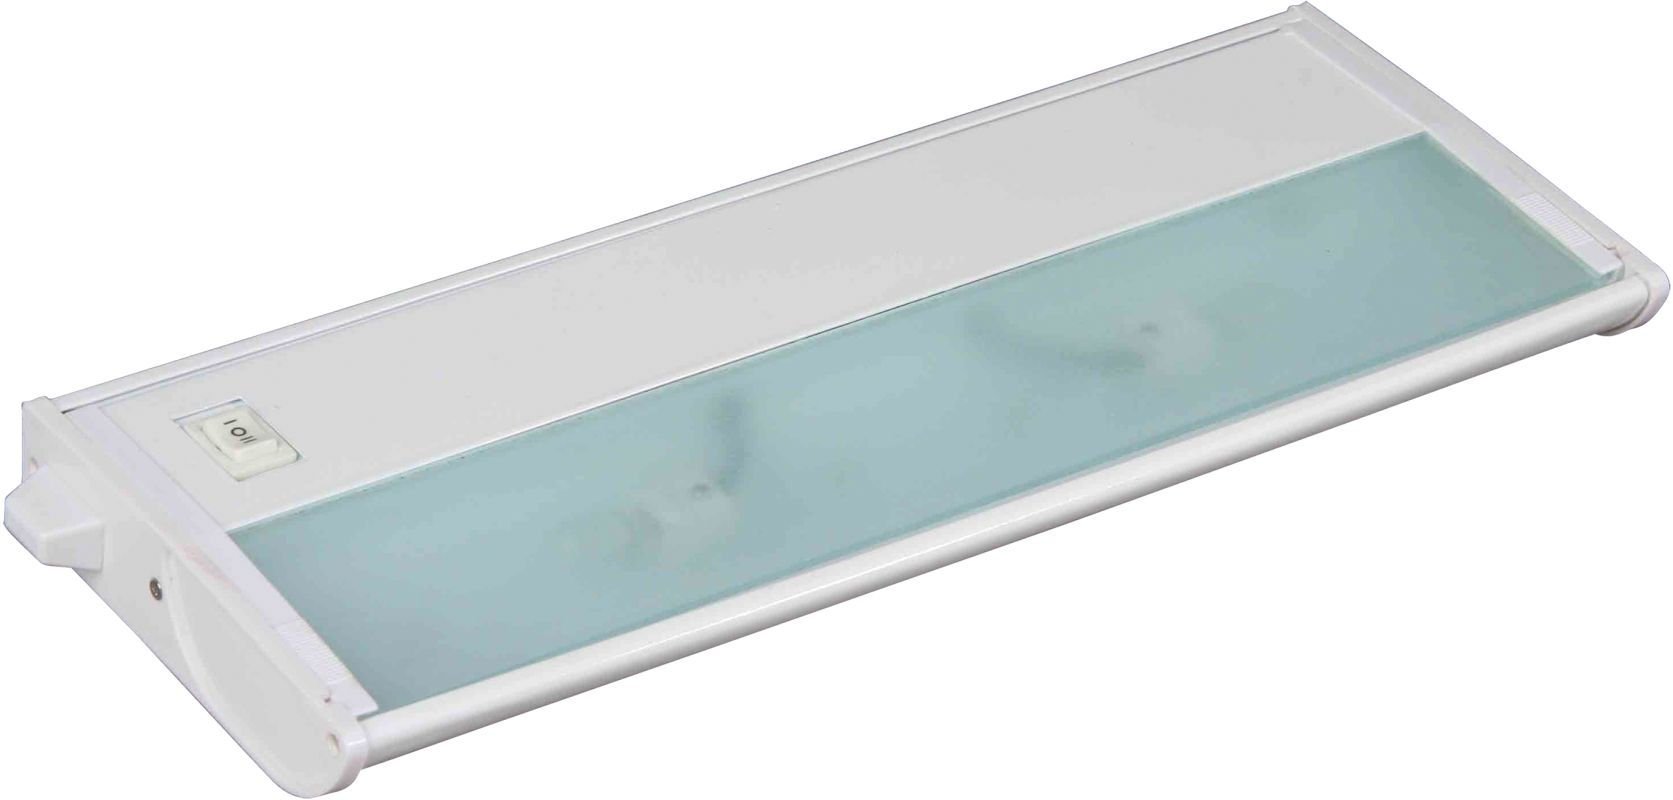 "Maxim 87861 13"" 2 Light Xenon Under Cabinet Add-On Light from the"